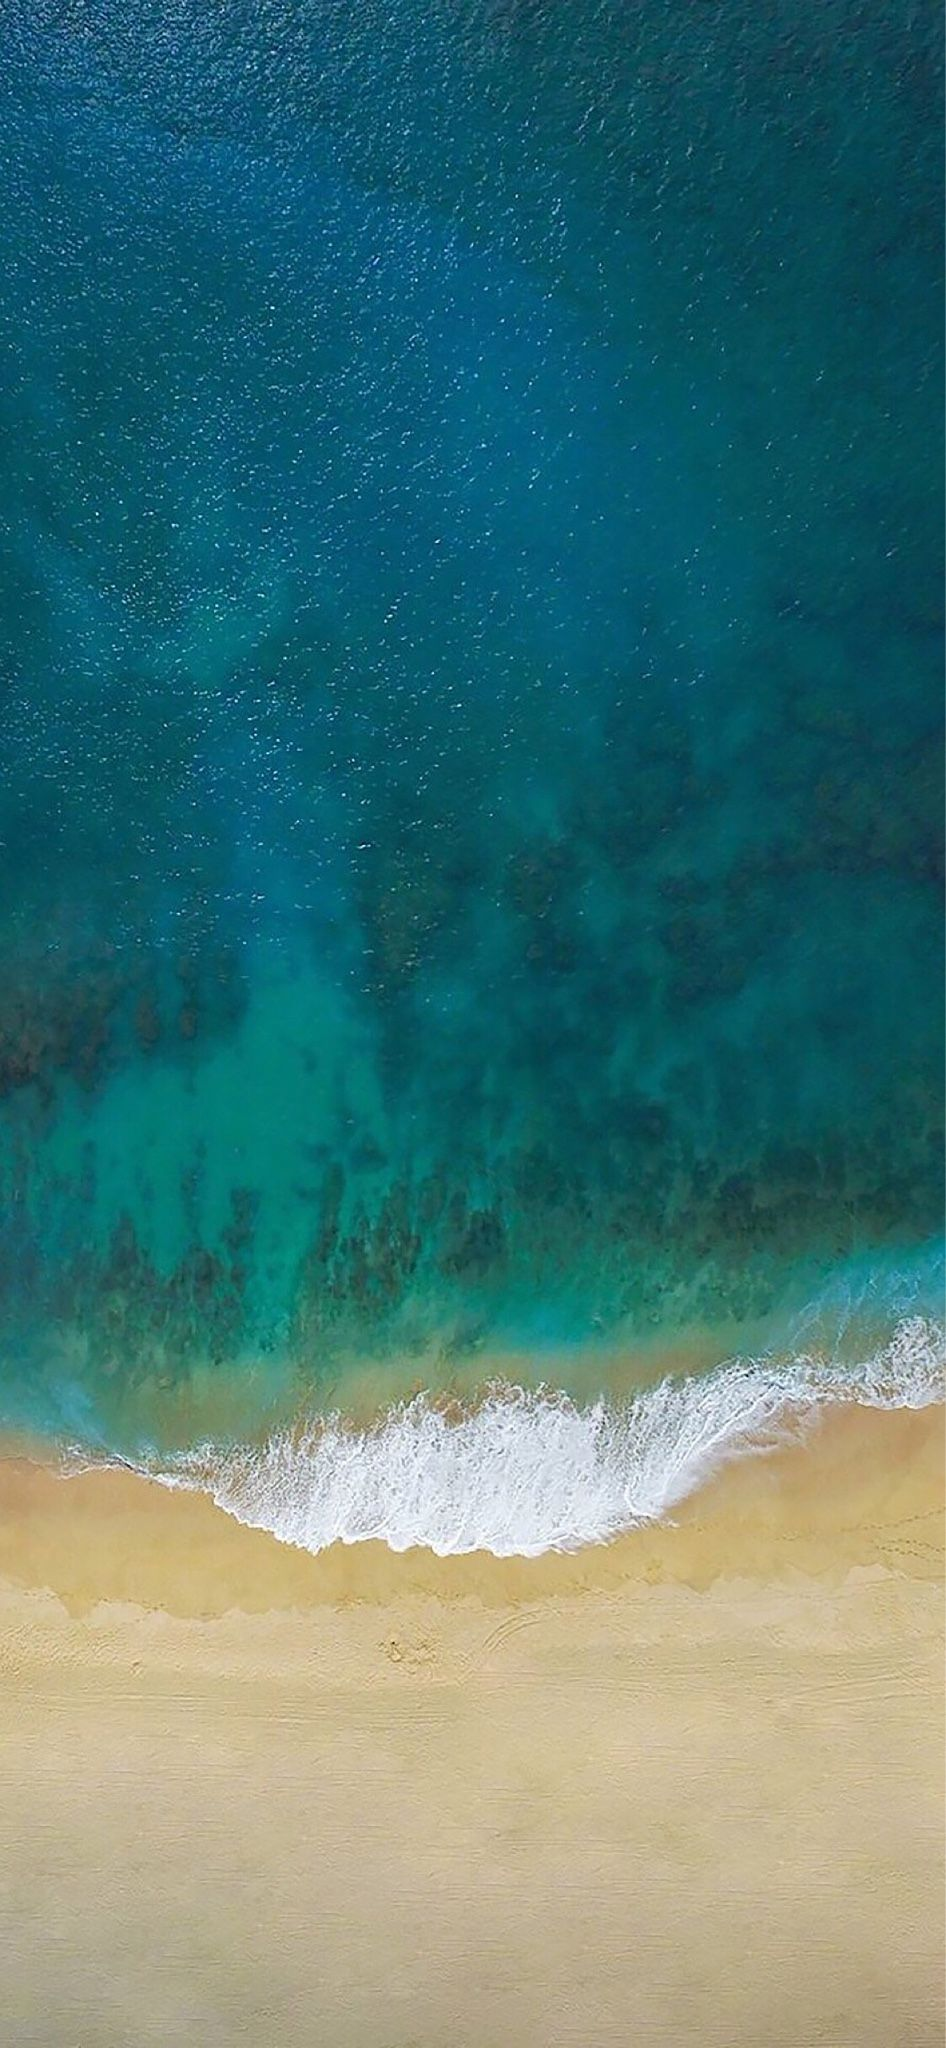 iphonex ios11 ios12 lockscreen homescreen backgrounds apple iphone